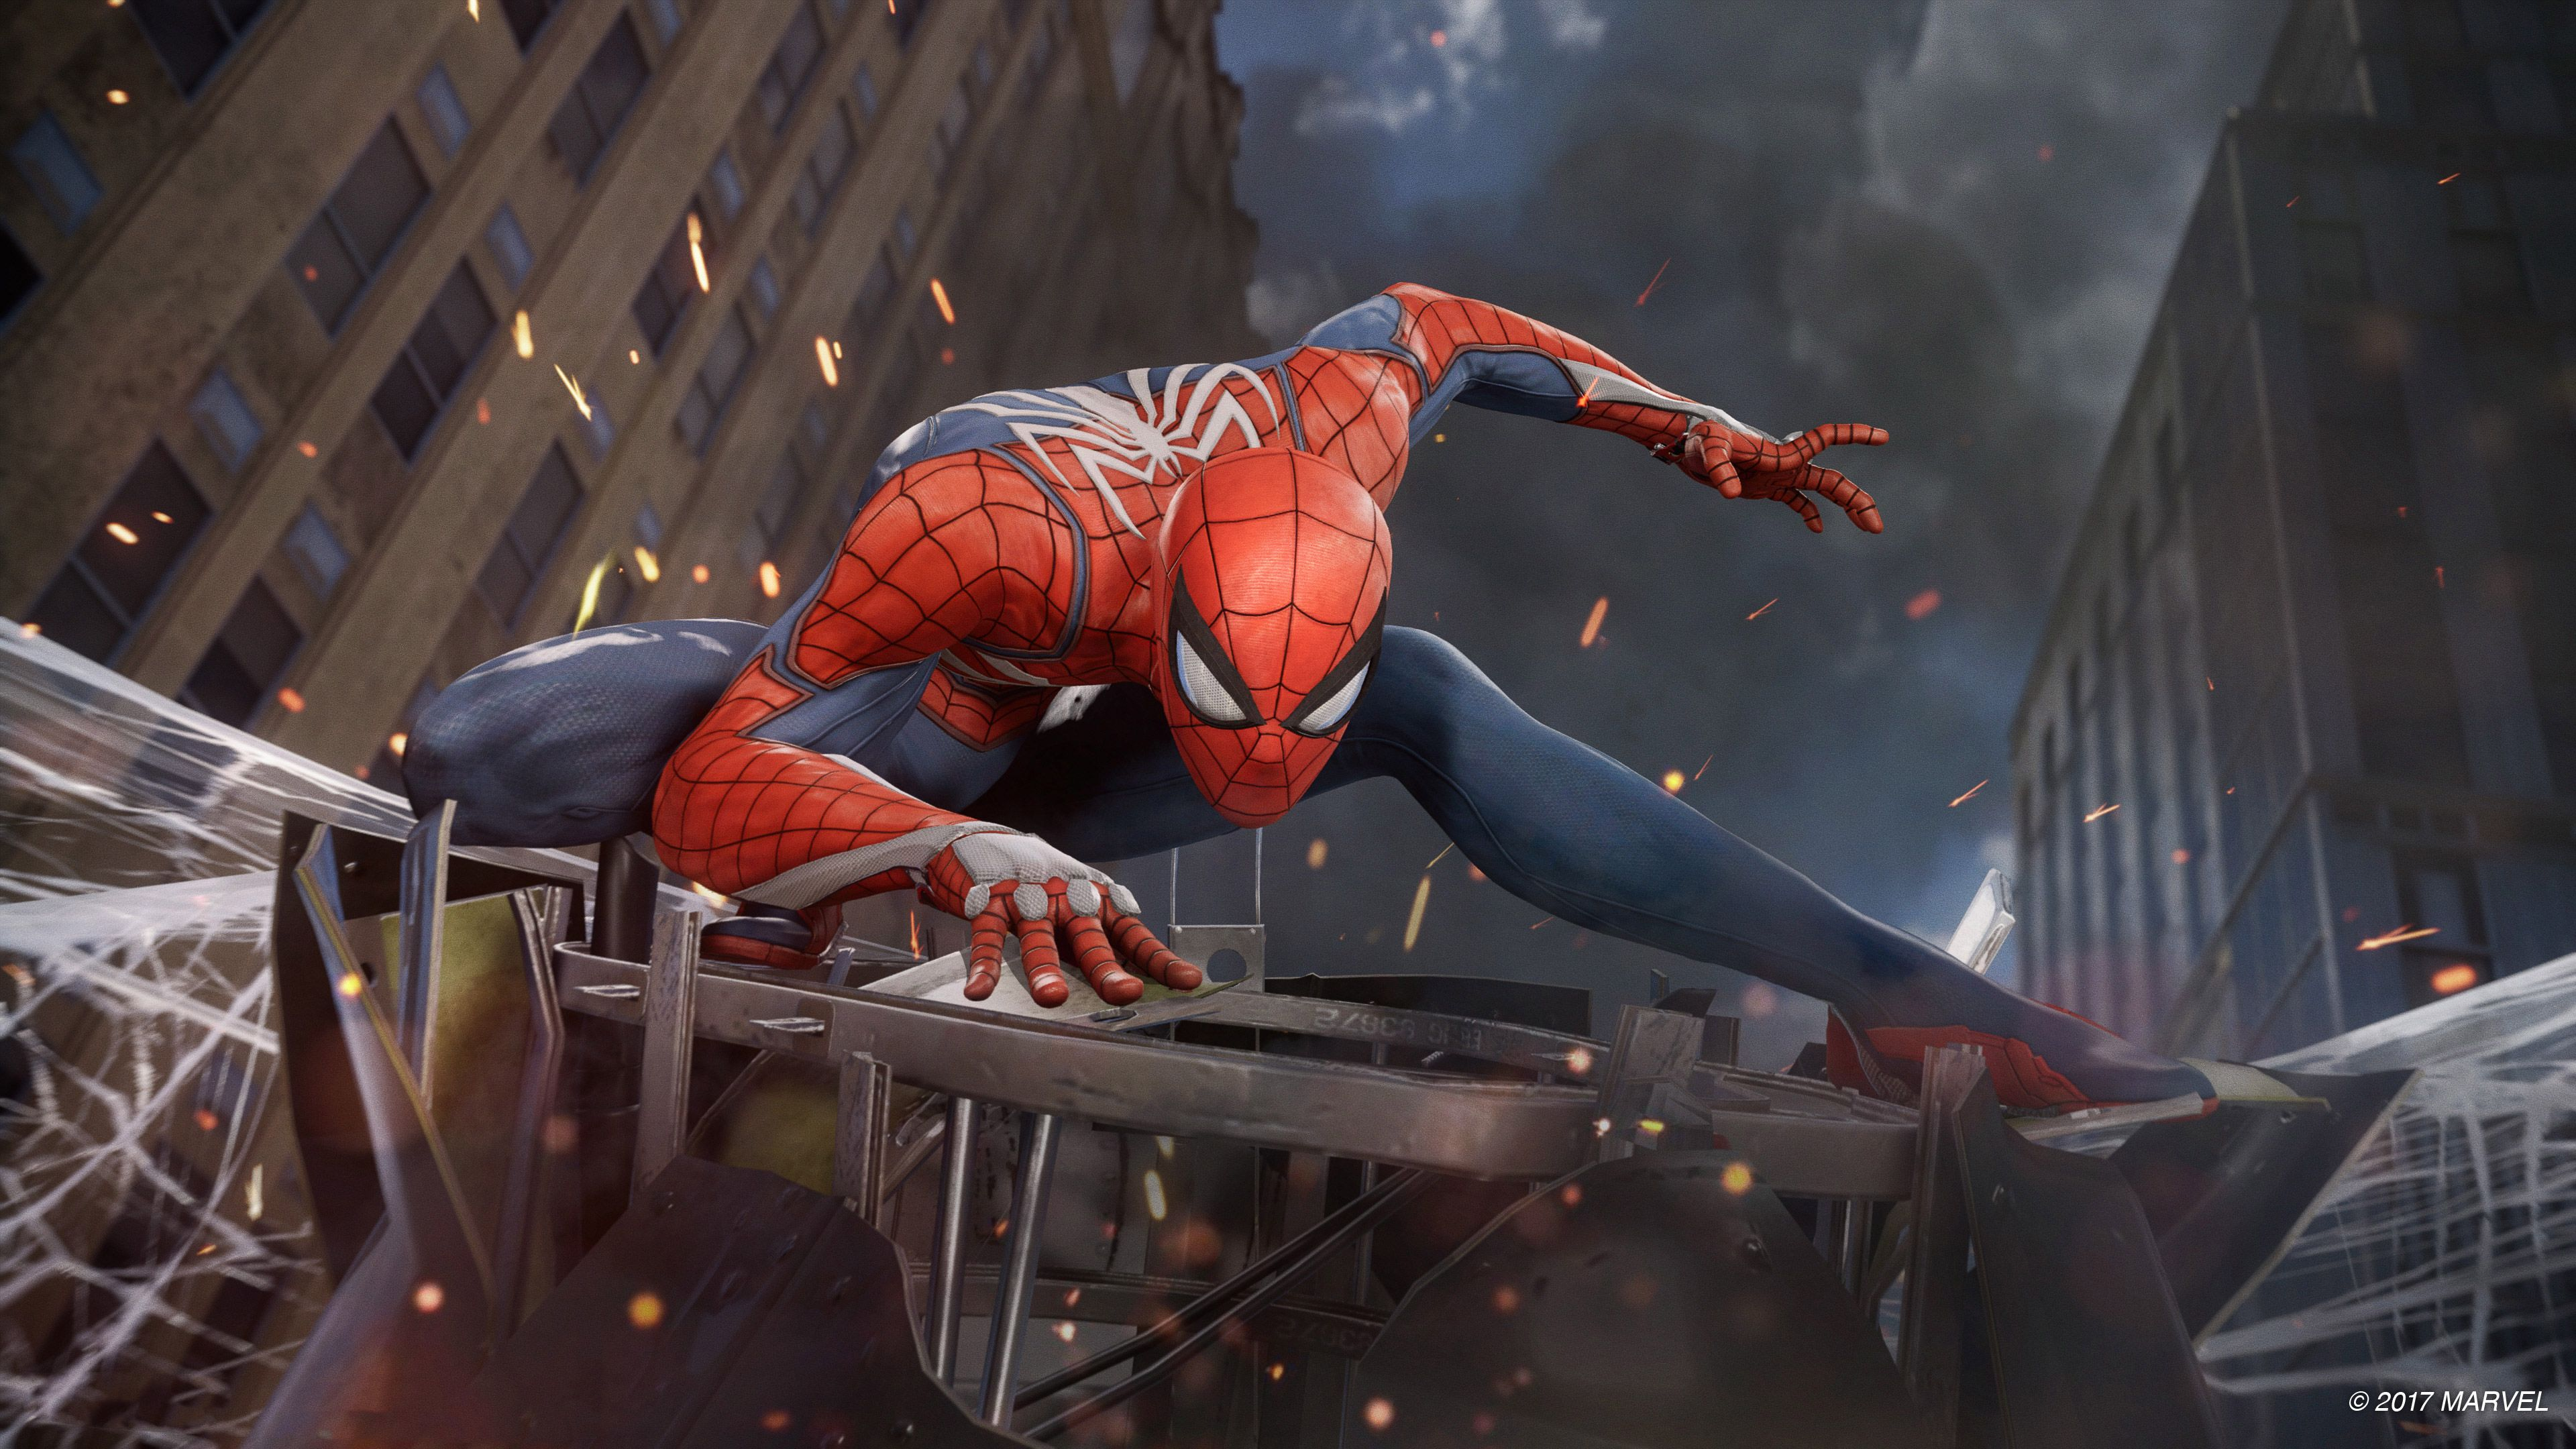 Spider Man PS4 E3 2017 4K Wallpapers | HD Wallpapers | ID #20519